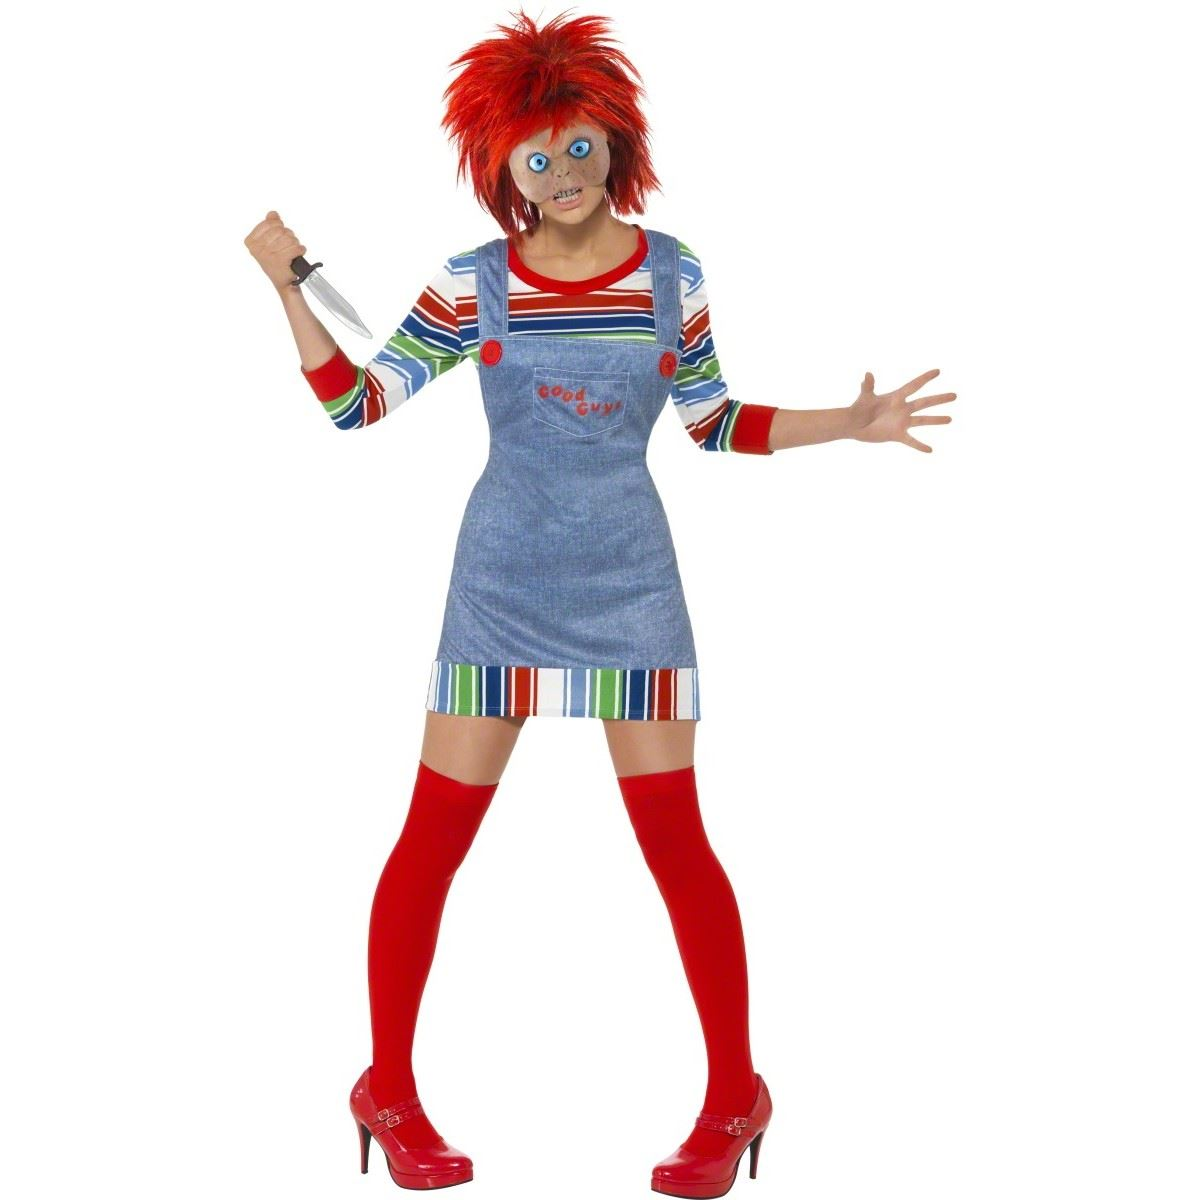 chucky doll costume - photo #3